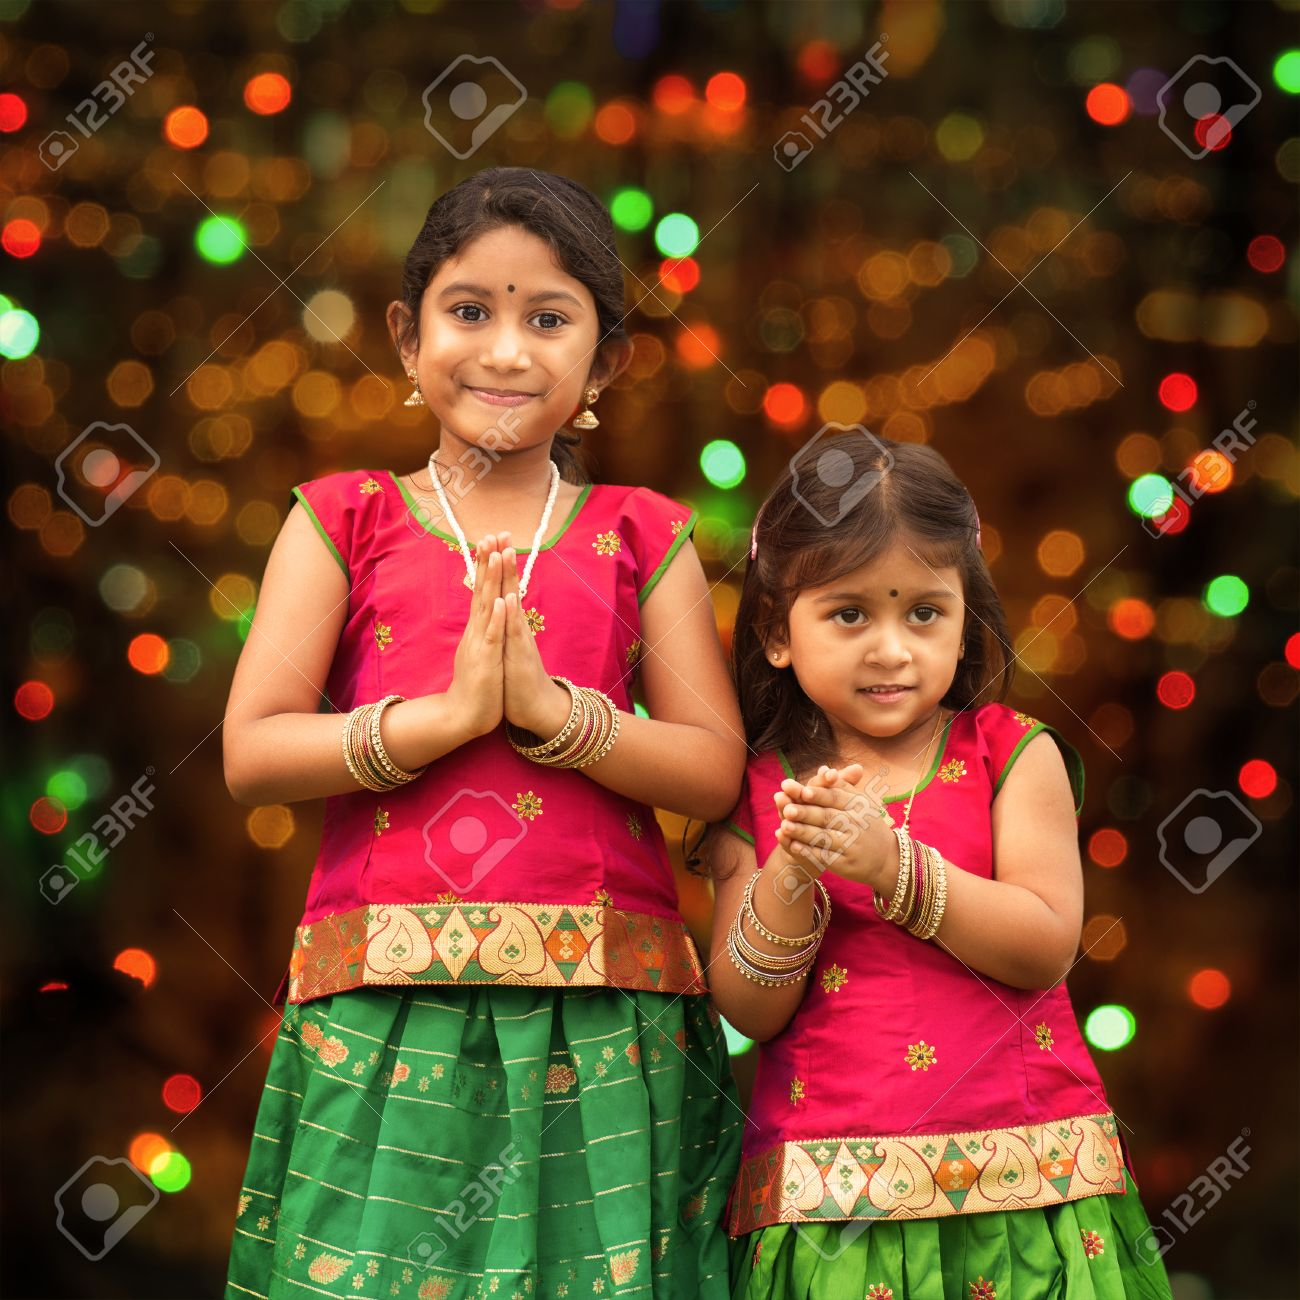 Cute Indian Girls Dressed In Sari With Folded Hands Representing